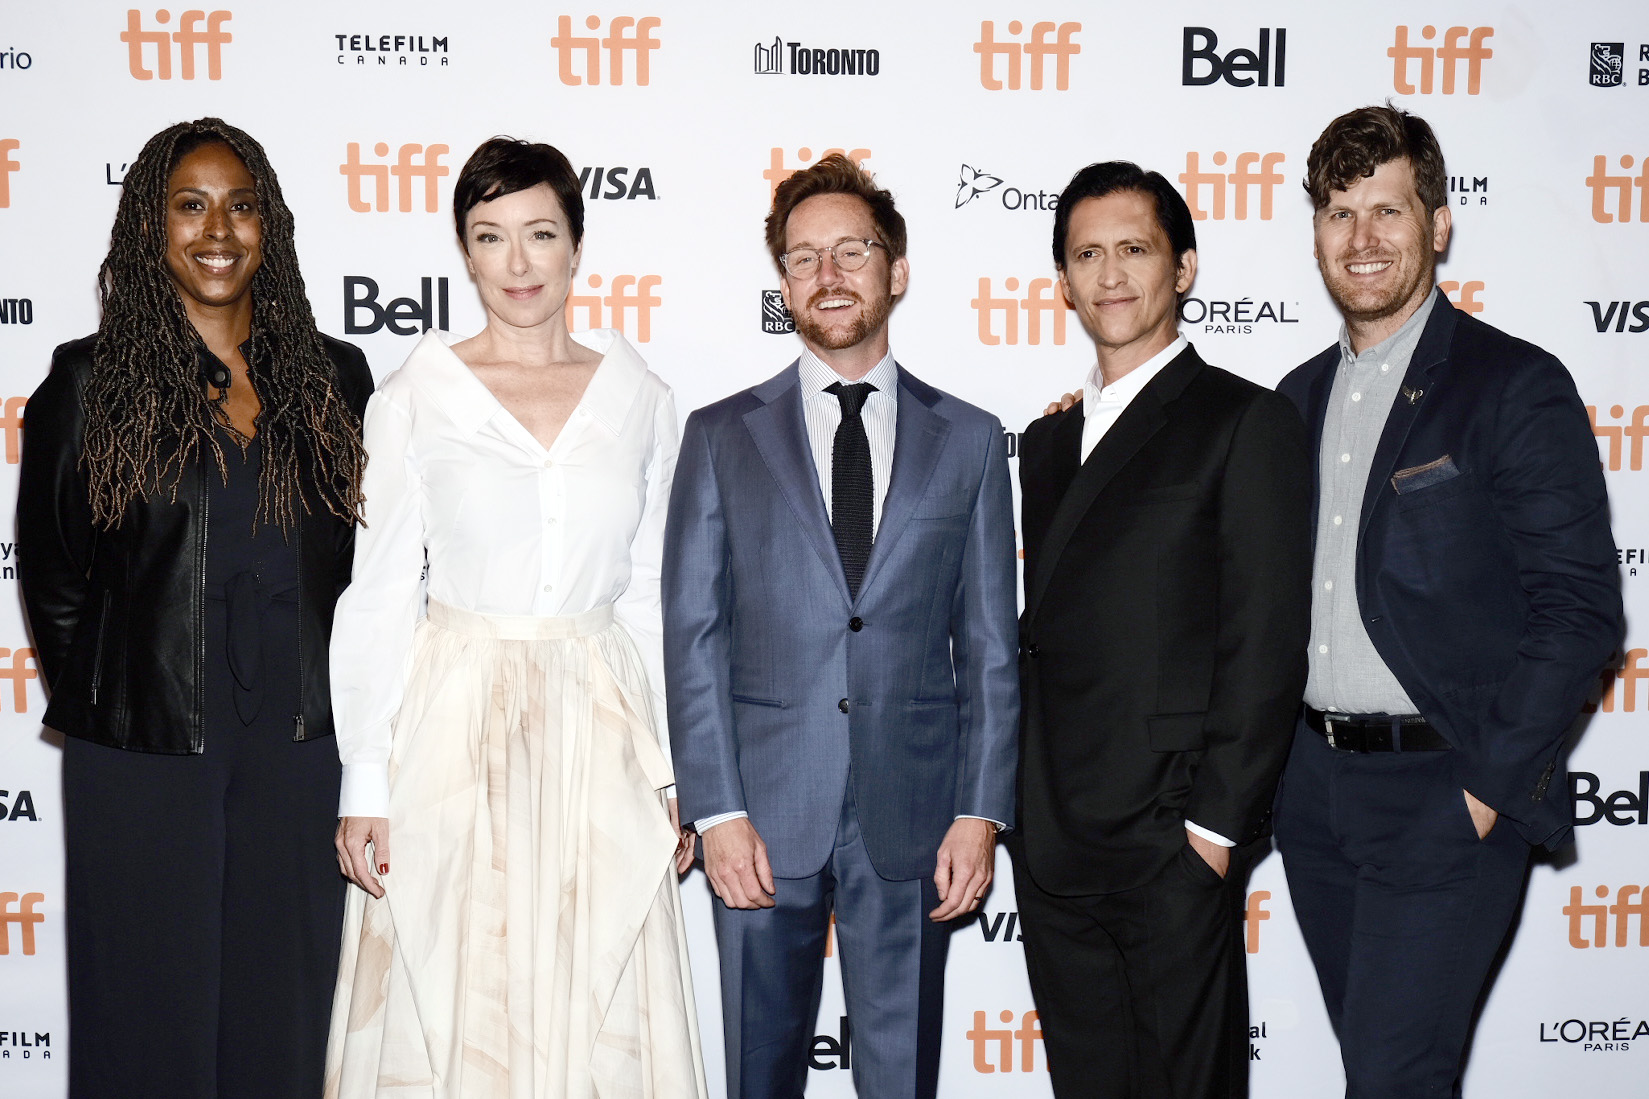 Clifton Collins Jr., Molly Parker, Robyn Citizen, Clint Bentley, and Greg Kwedar at an event for Jockey (2021)